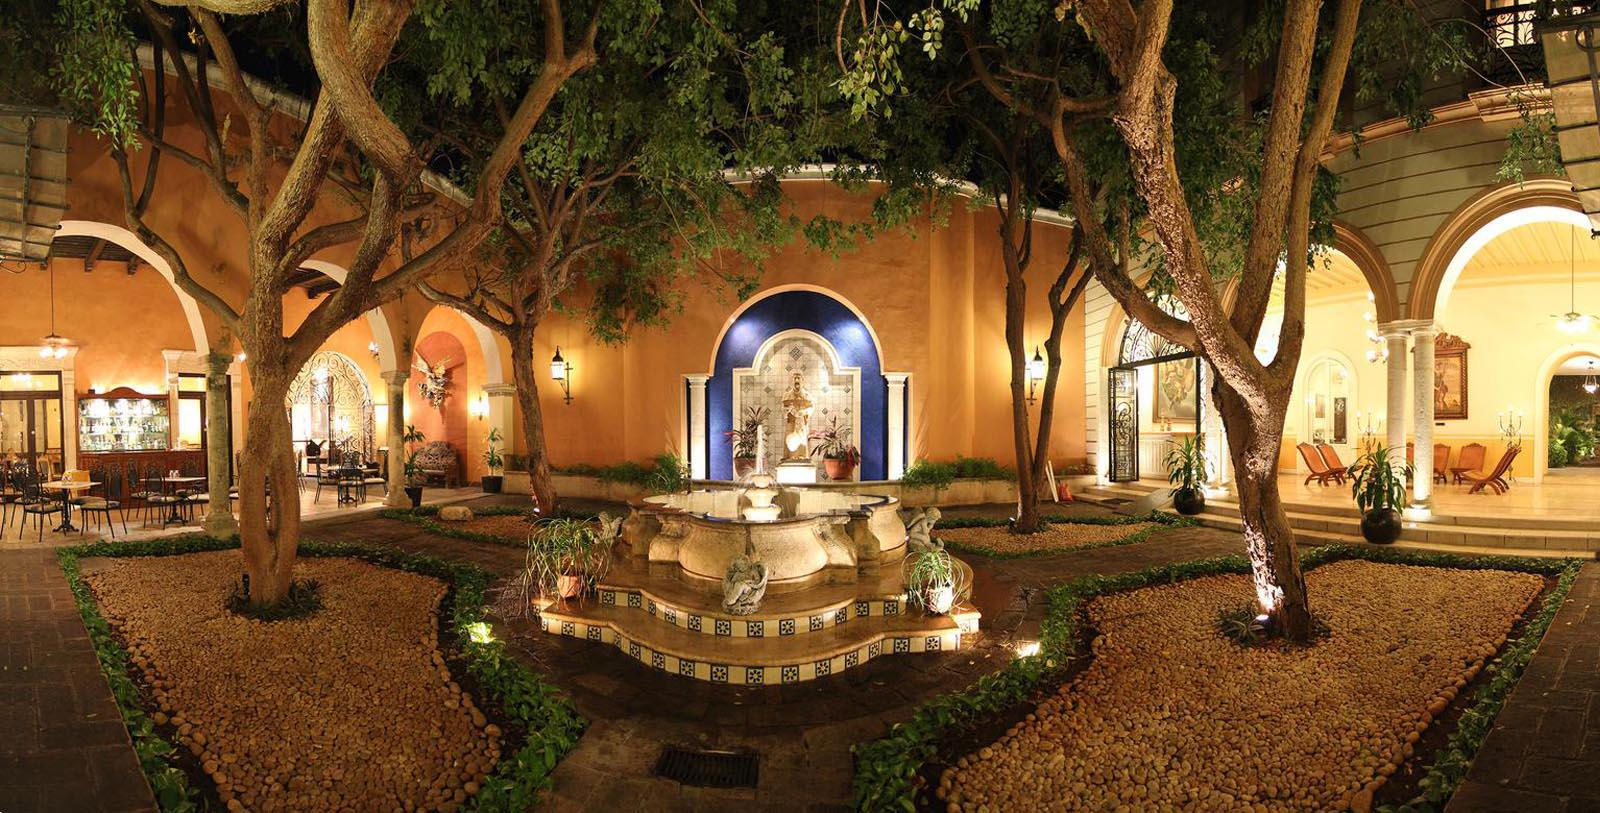 Image of Fountain and Outdoor Seating La Misión de Fray Diego, 1867 Member of Historic Hotels Worldwide, in Merida, Mexico, Spa